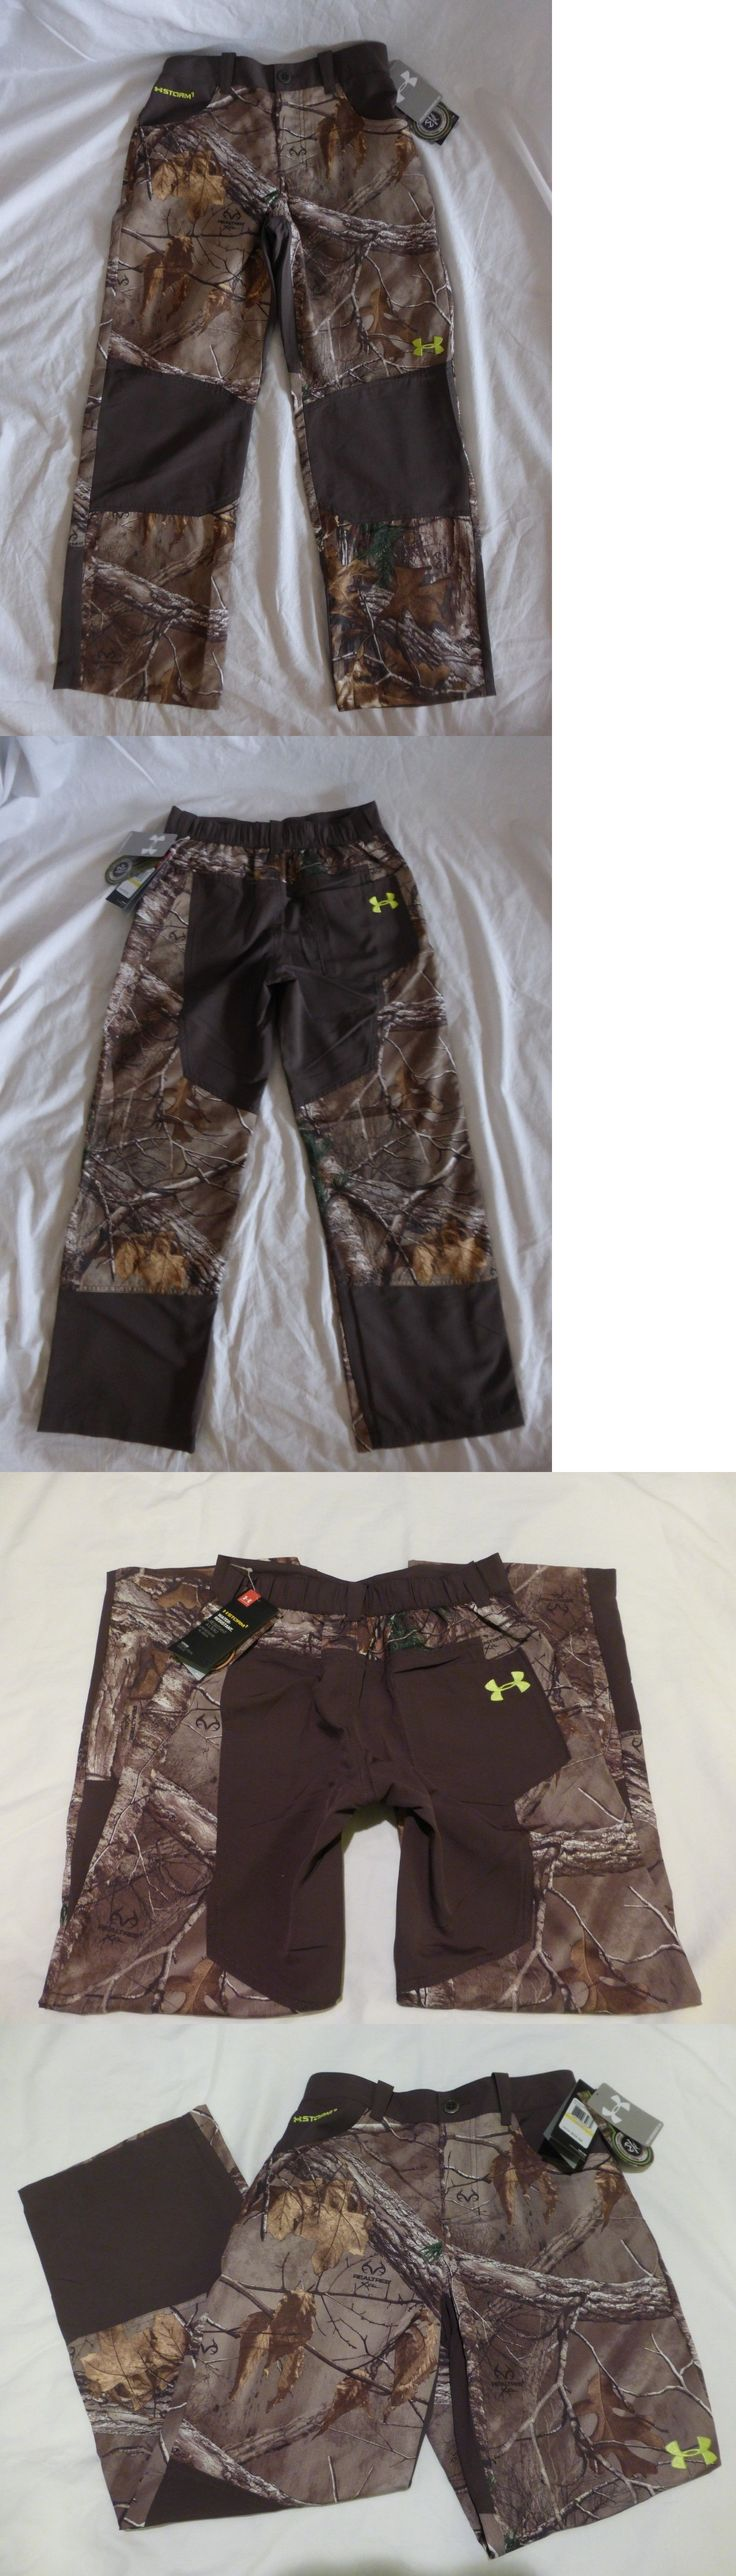 Pants and Bibs 177873: Nwt Under Armour Realtree Xtra Storm 1 Camo Hunting Pants Youth Medium -> BUY IT NOW ONLY: $30.95 on eBay!